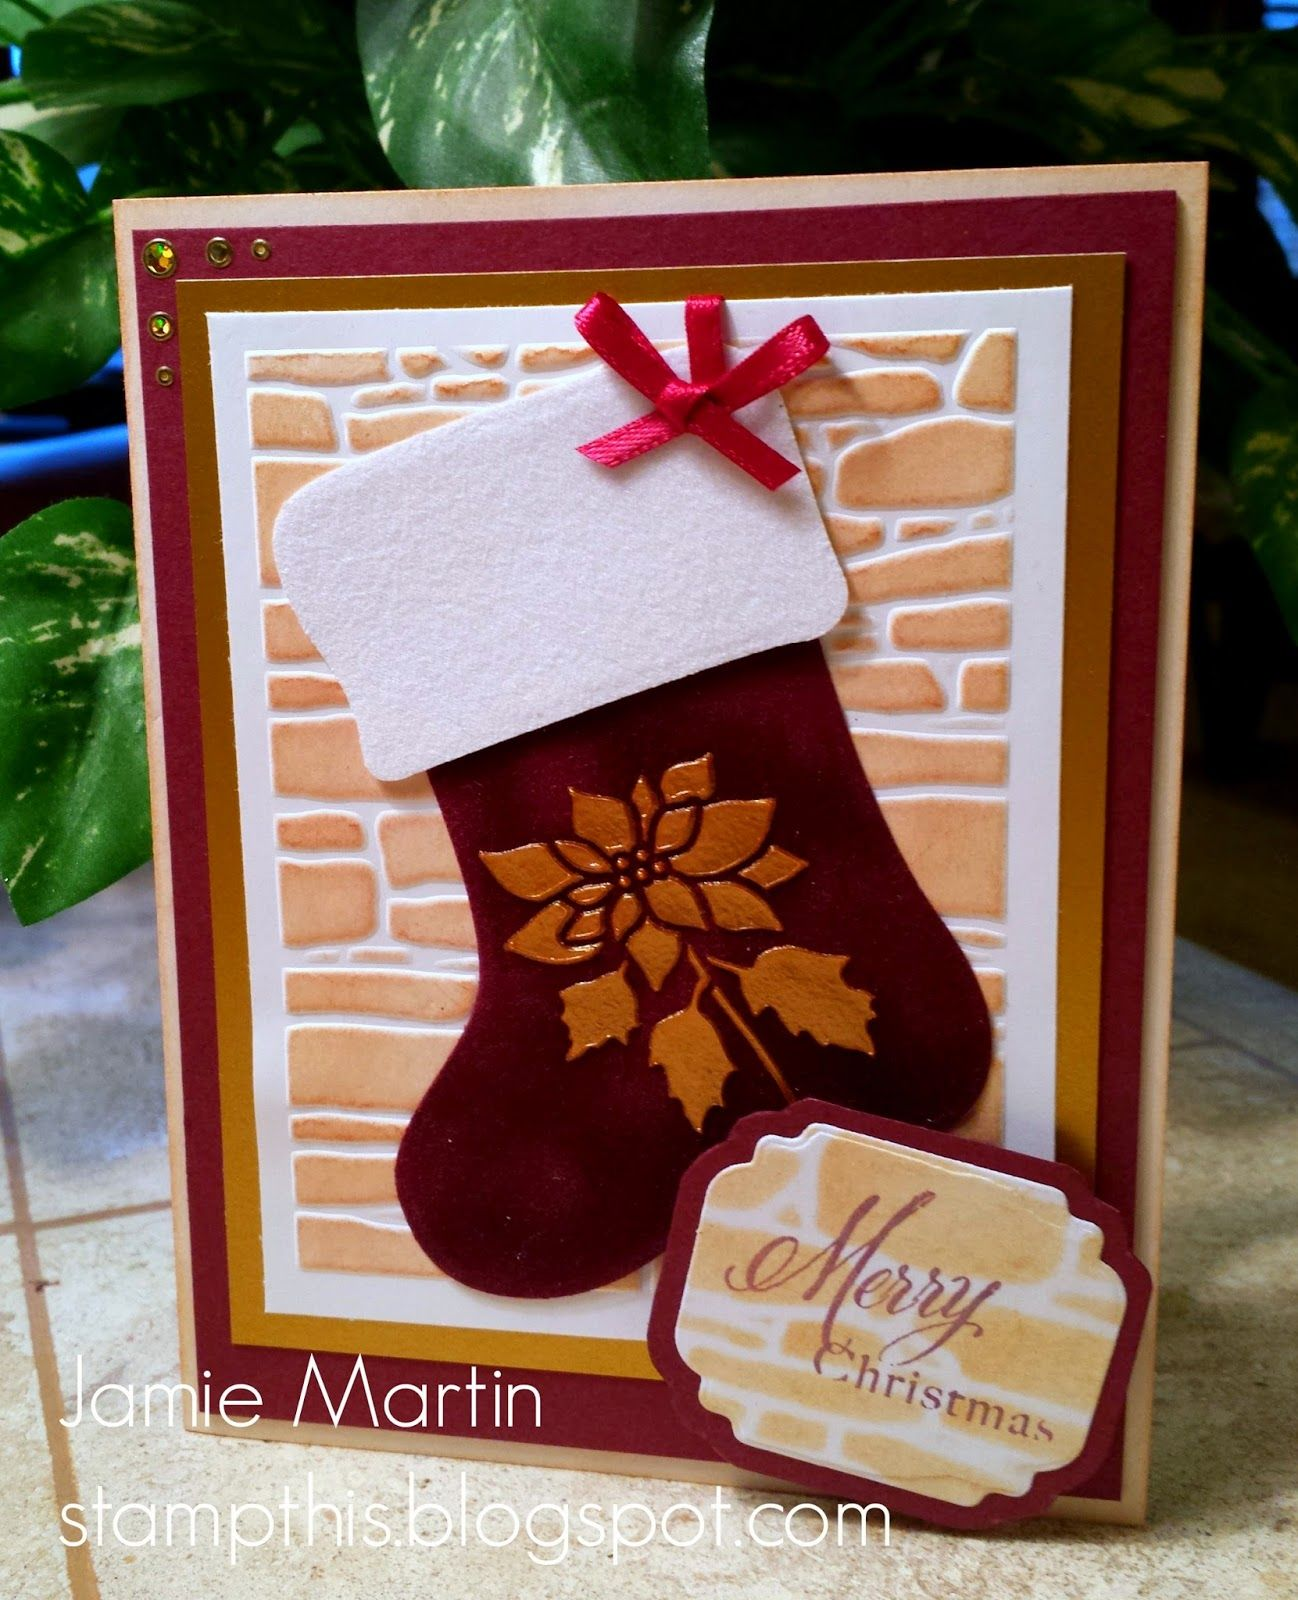 By The Chimney With Care (With images) | Christmas cards